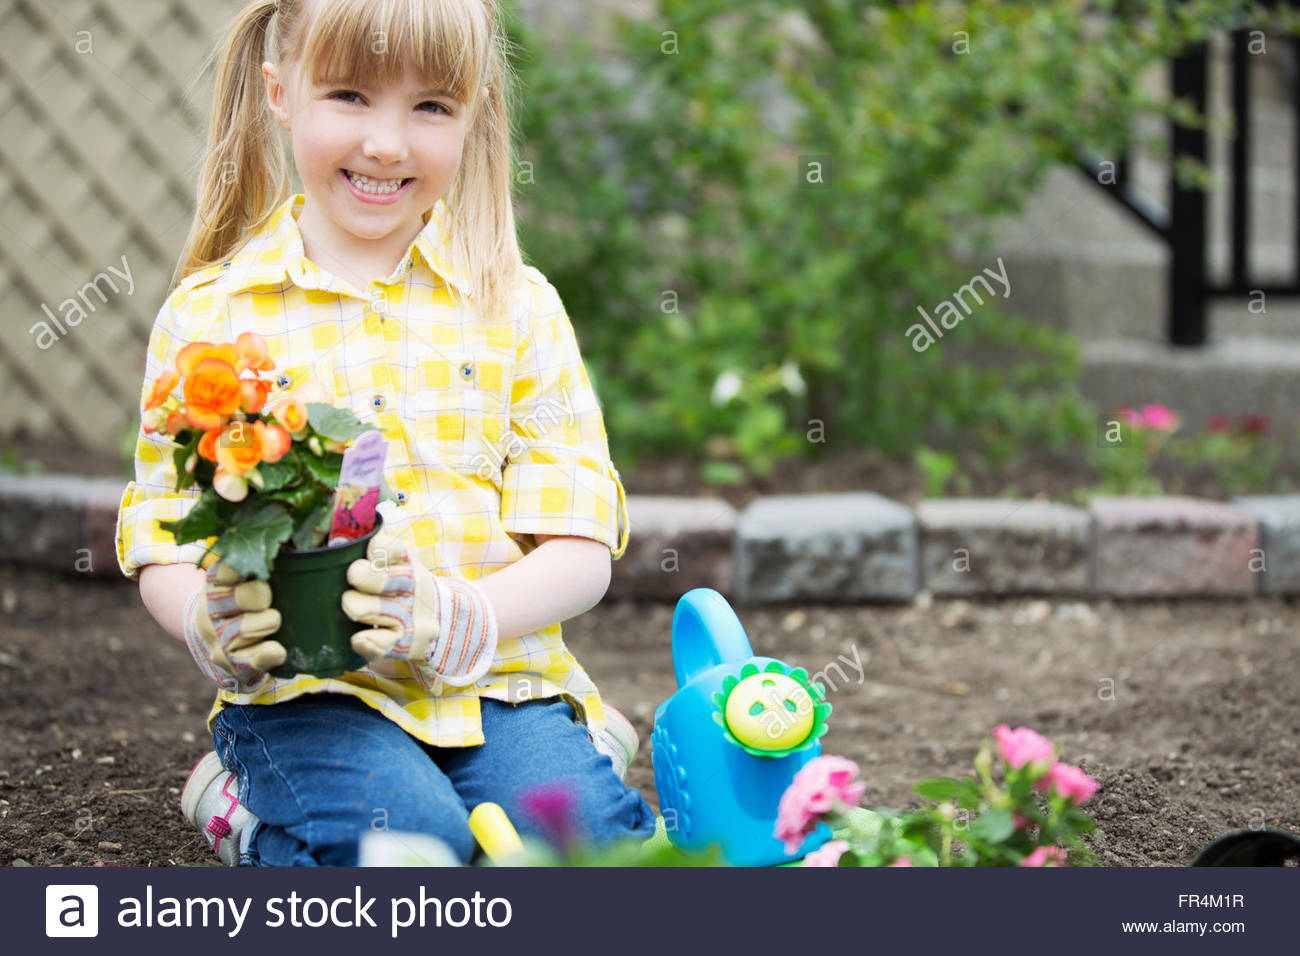 cute, 5 year old girl planting flowers - Stock Image